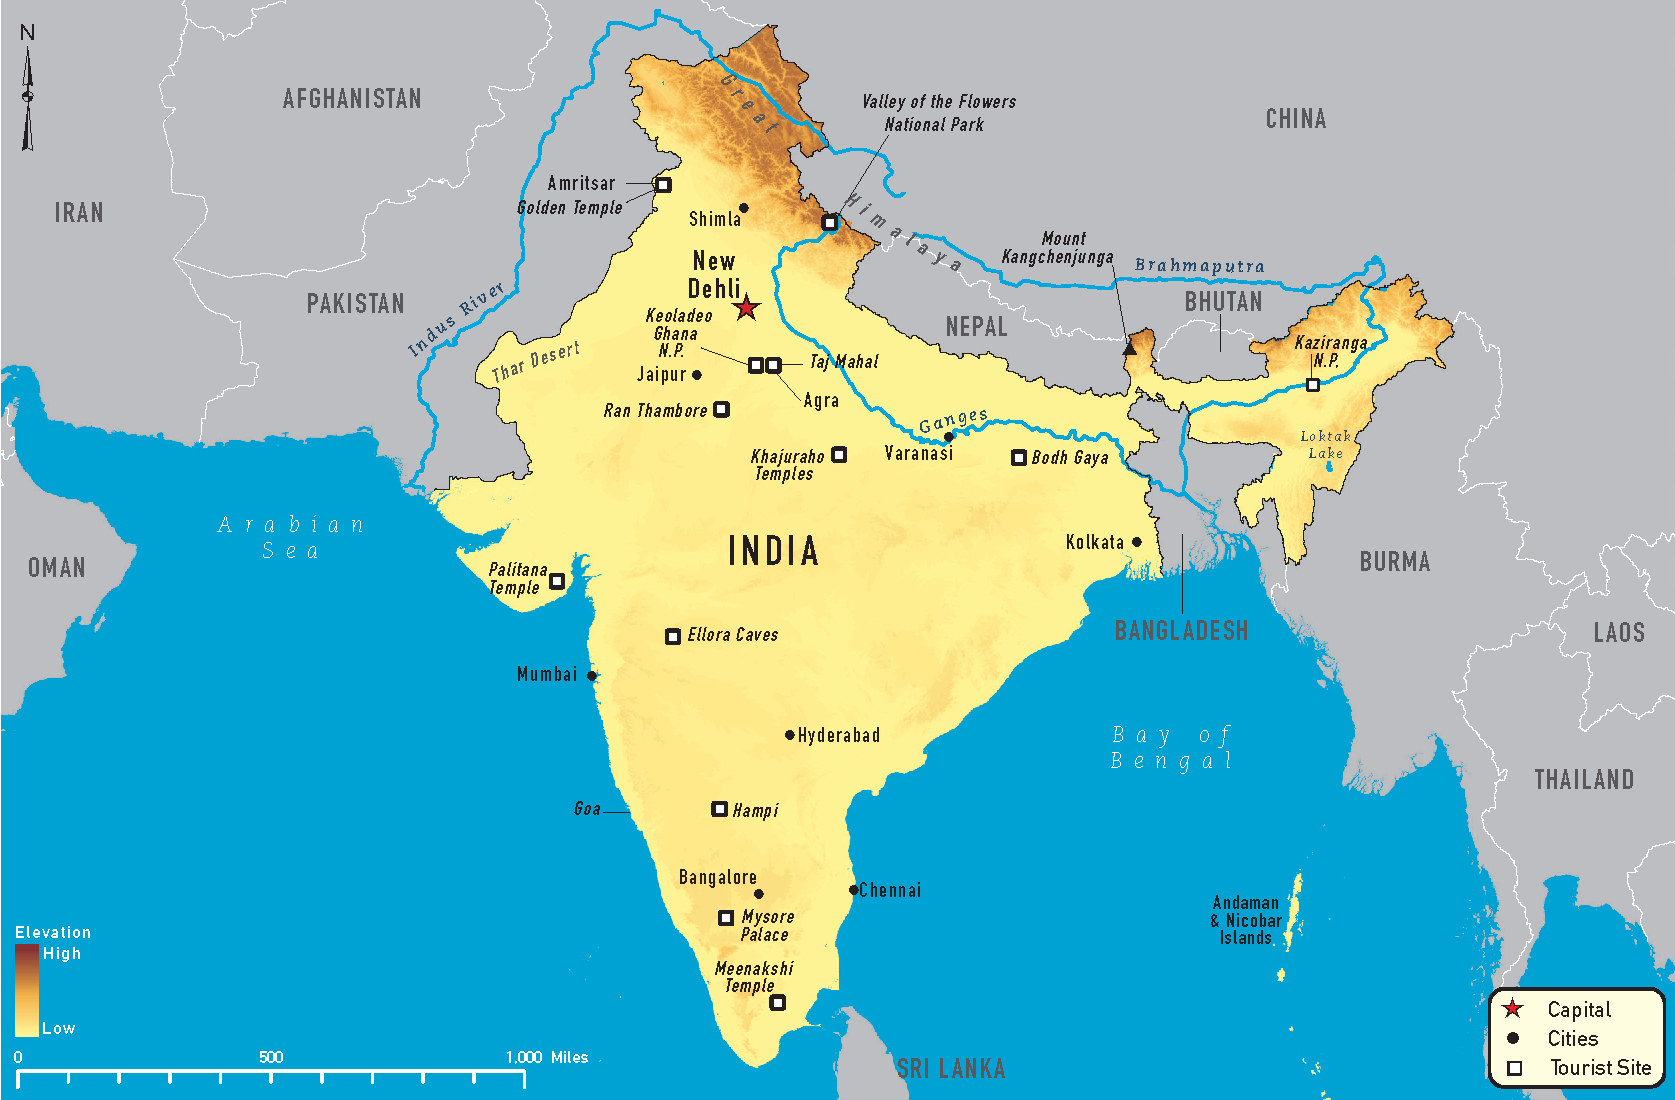 malaria in india map with Great Indian Desert Map on Africa moreover Coast To Coast The History Of Transcontinental Travel Part 1 The Unknown Horizon furthermore Eradication Of Diseases besides Burma additionally Iraq.